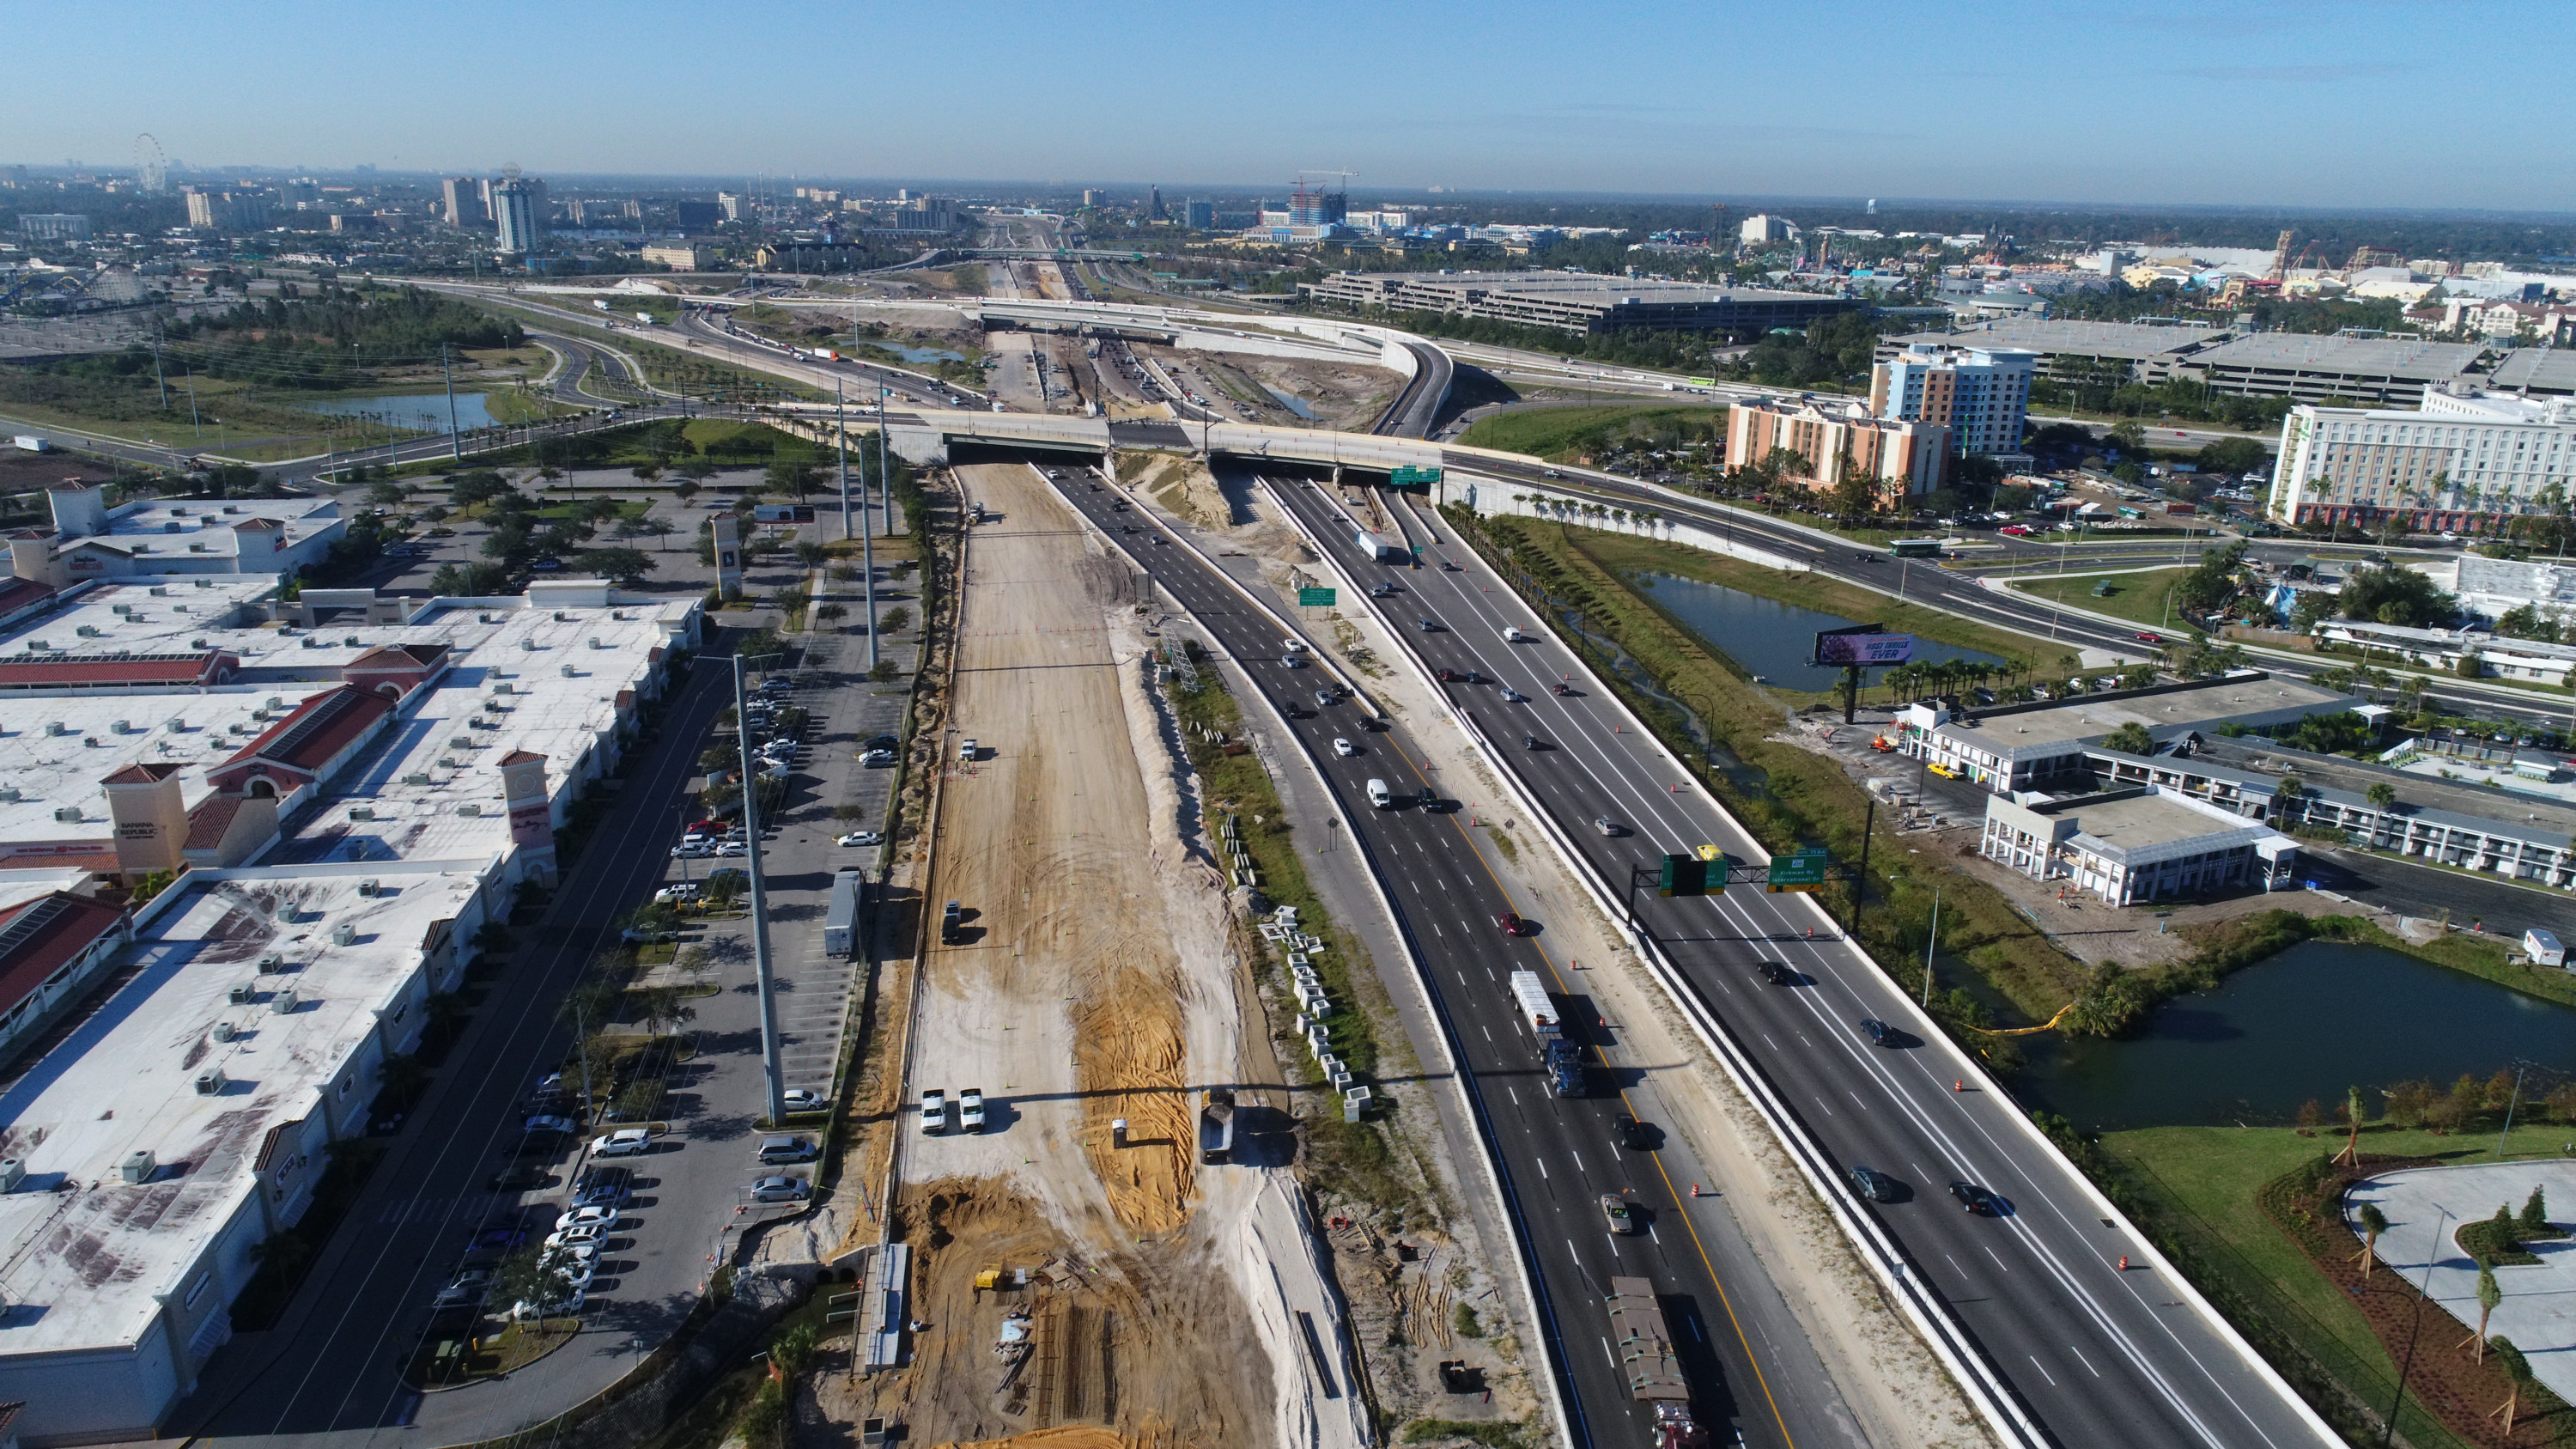 I 4 Ultimate Improvement Project The Lane Construction